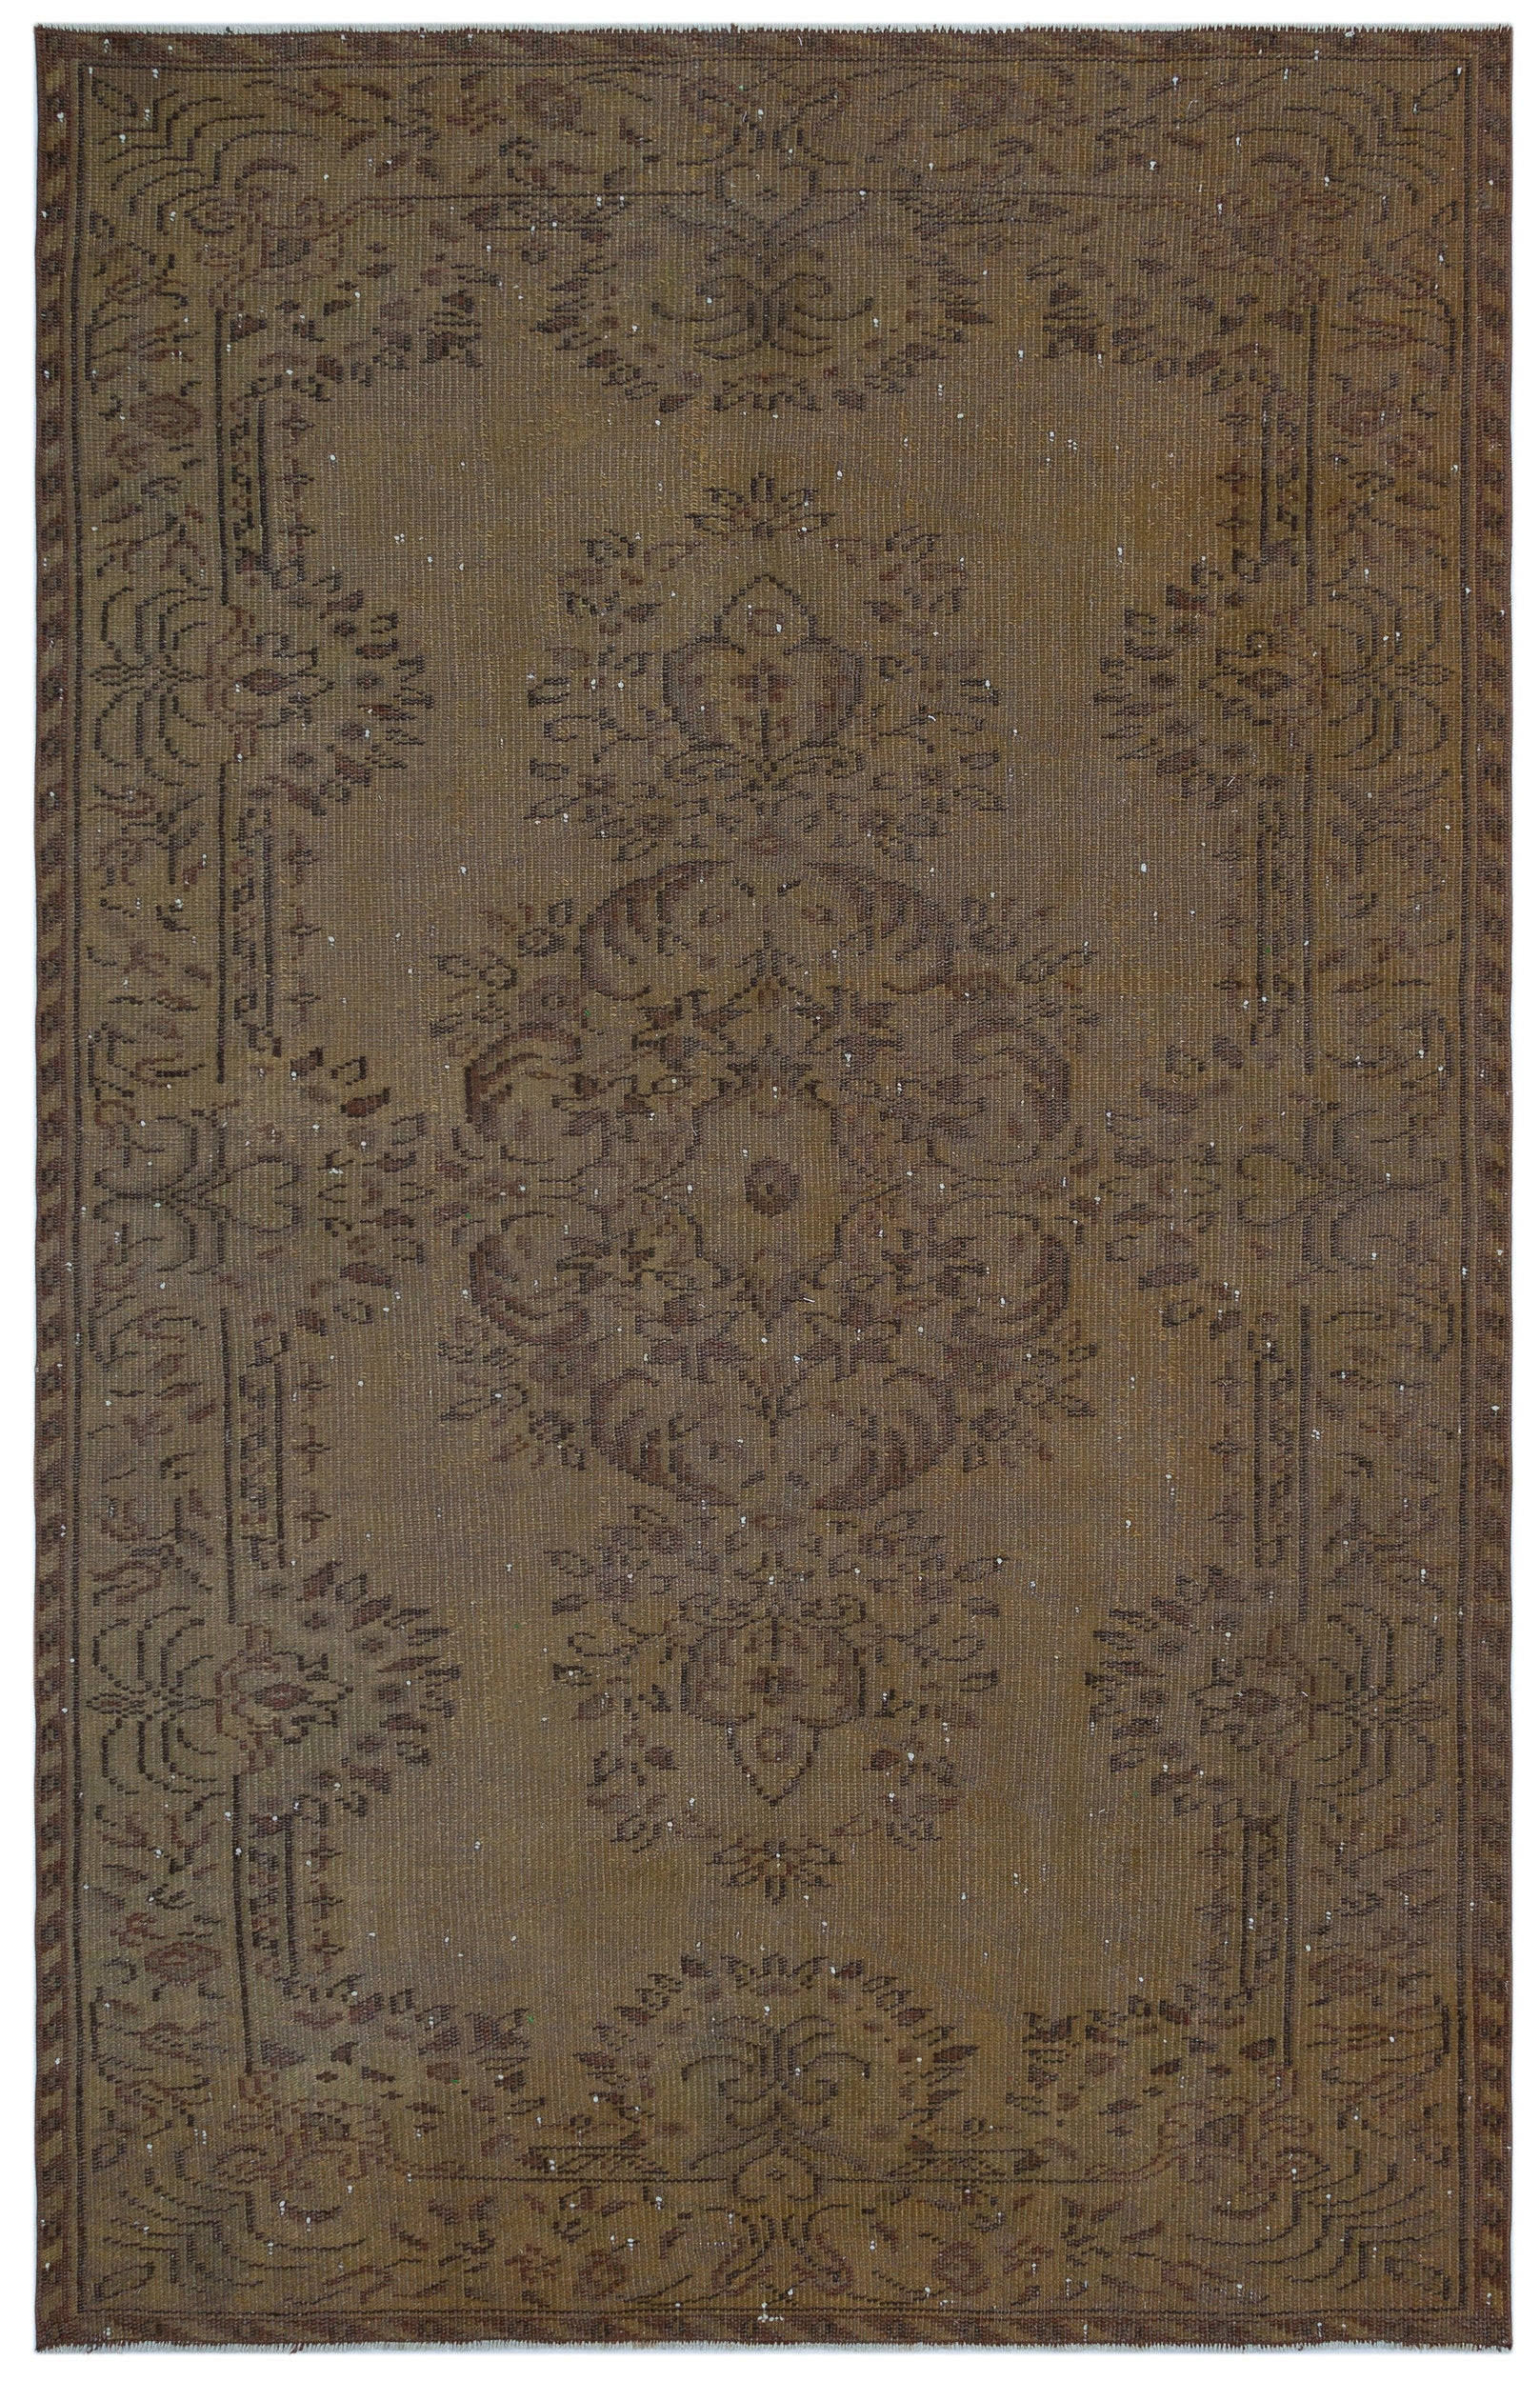 Brown Over Dyed Vintage Rug 5'6'' x 8'6'' ft 168 x 258 cm